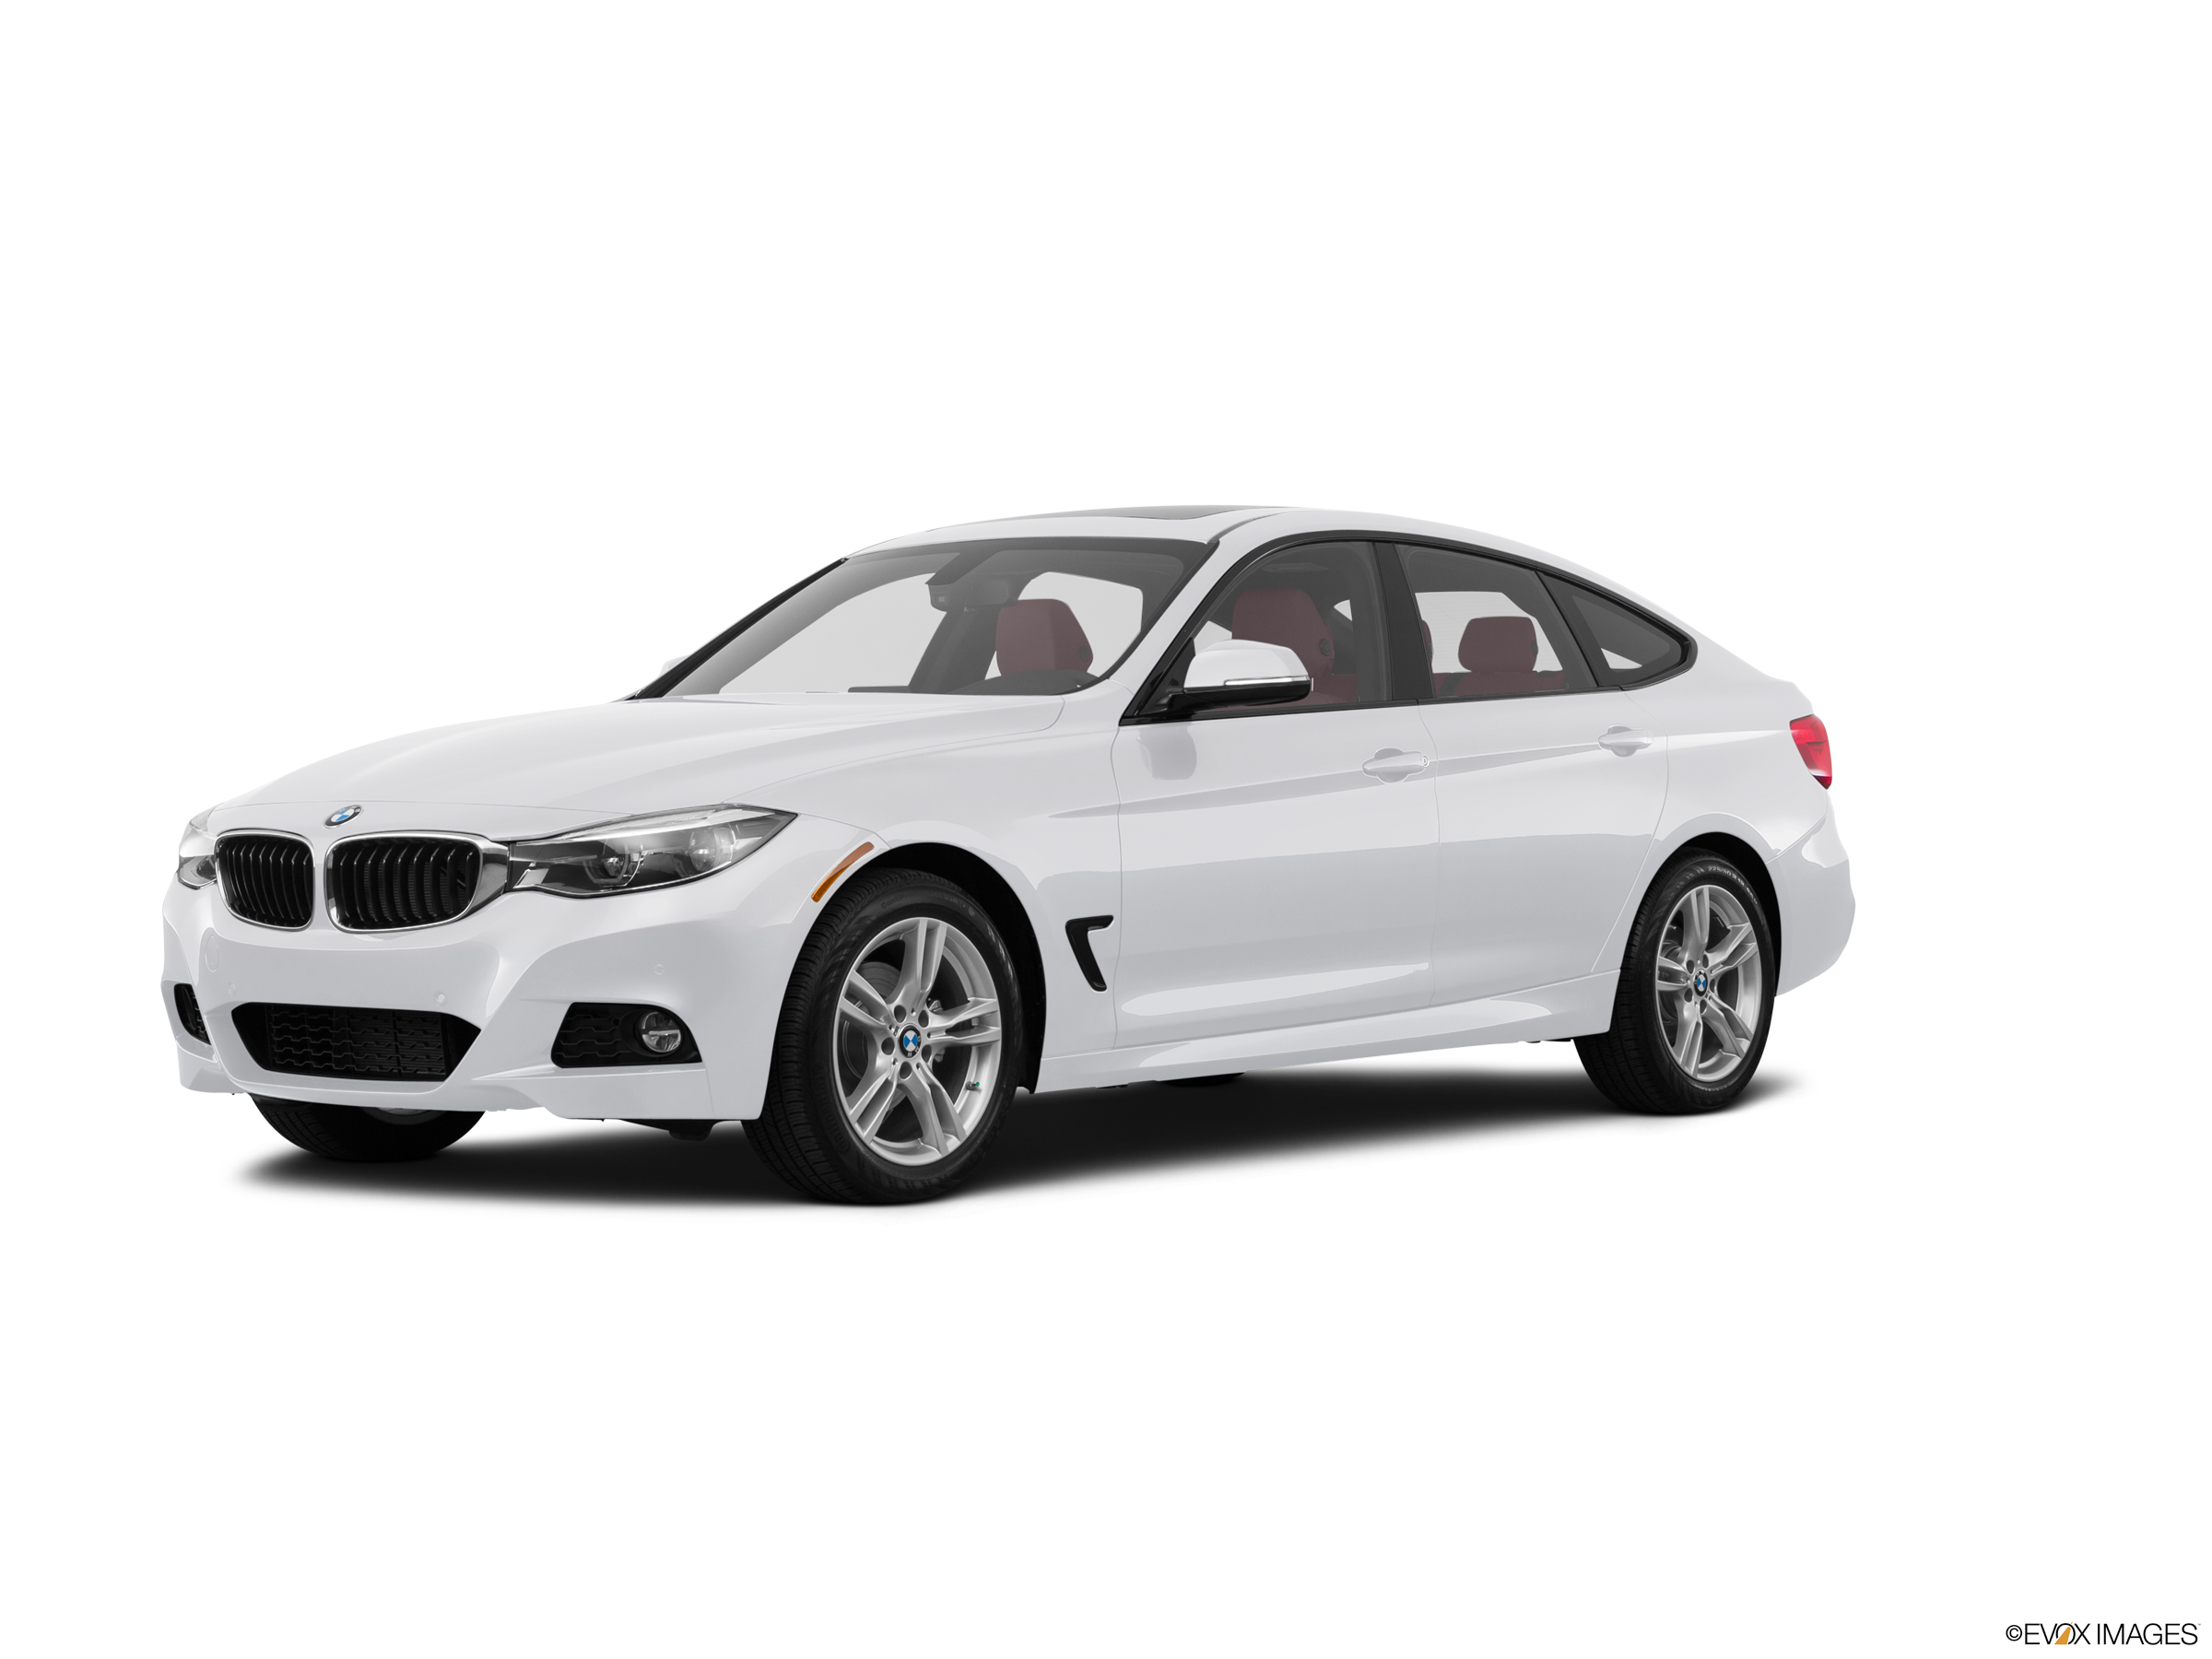 Top Expert Rated Hatchbacks of 2017 - 2017 BMW 3 Series